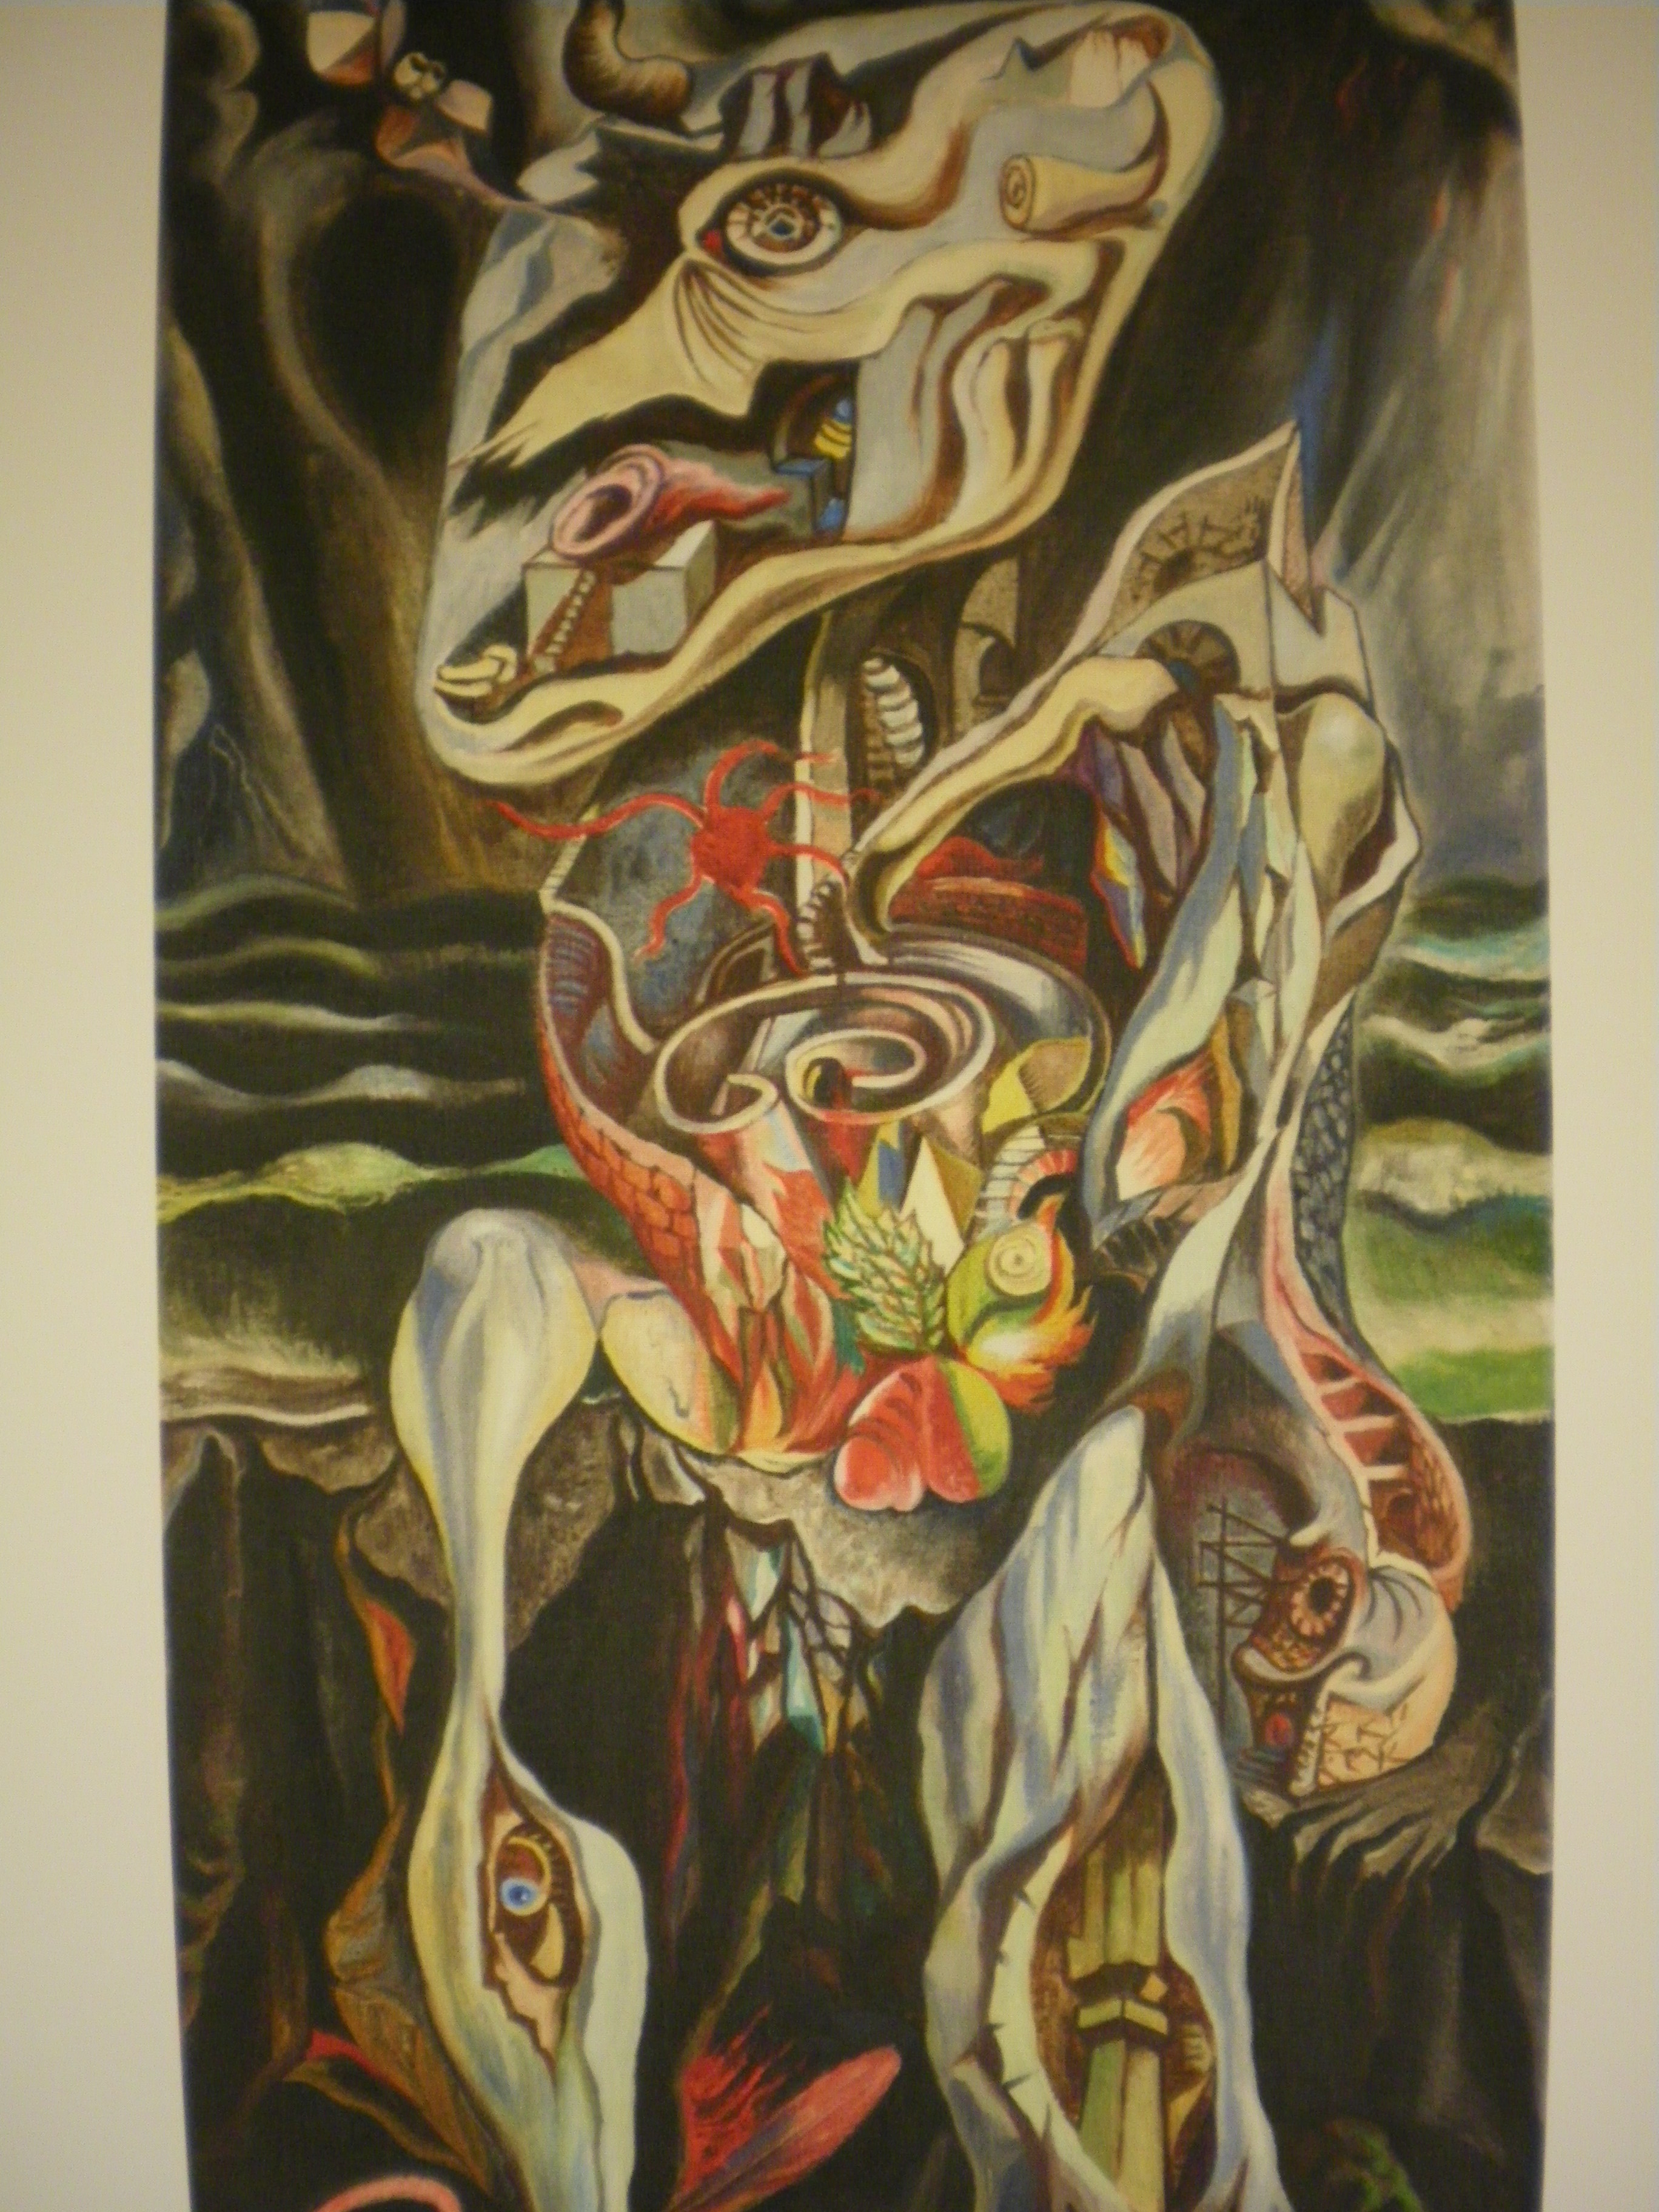 Oeuvre d'André Masson